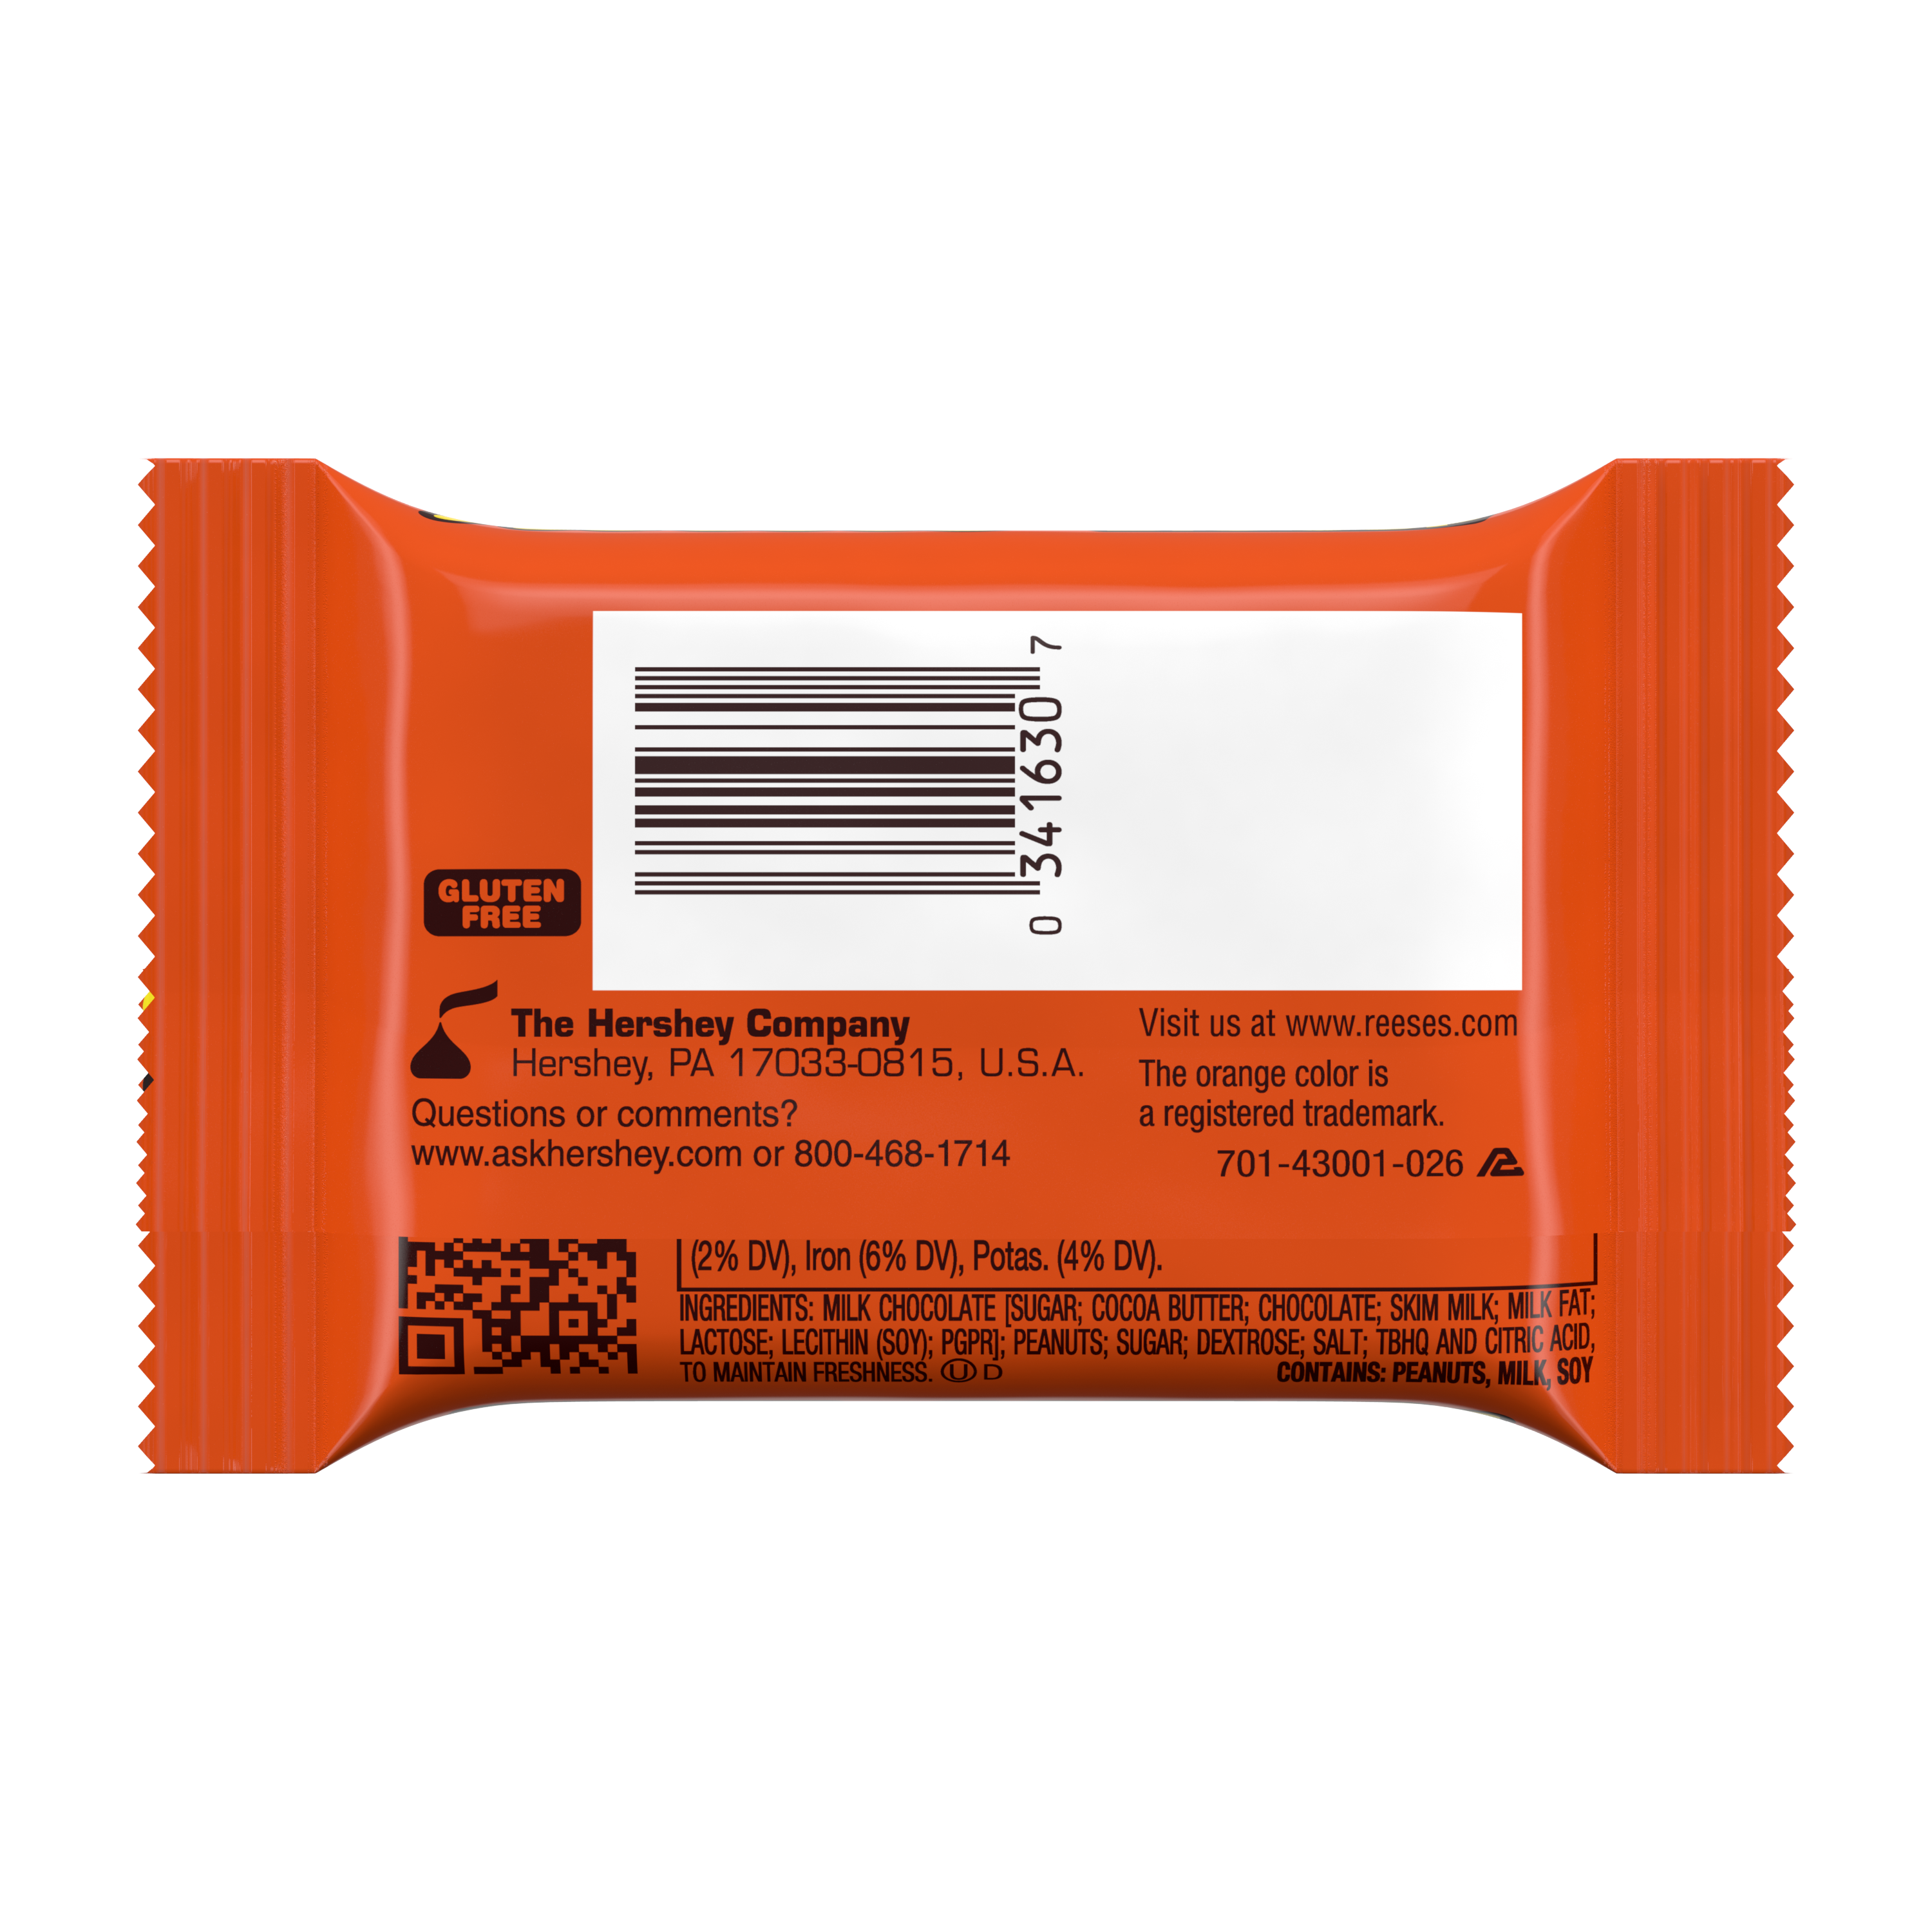 REESE'S Big Cup Milk Chocolate Peanut Butter Cup, 1.4 oz - Back of Package